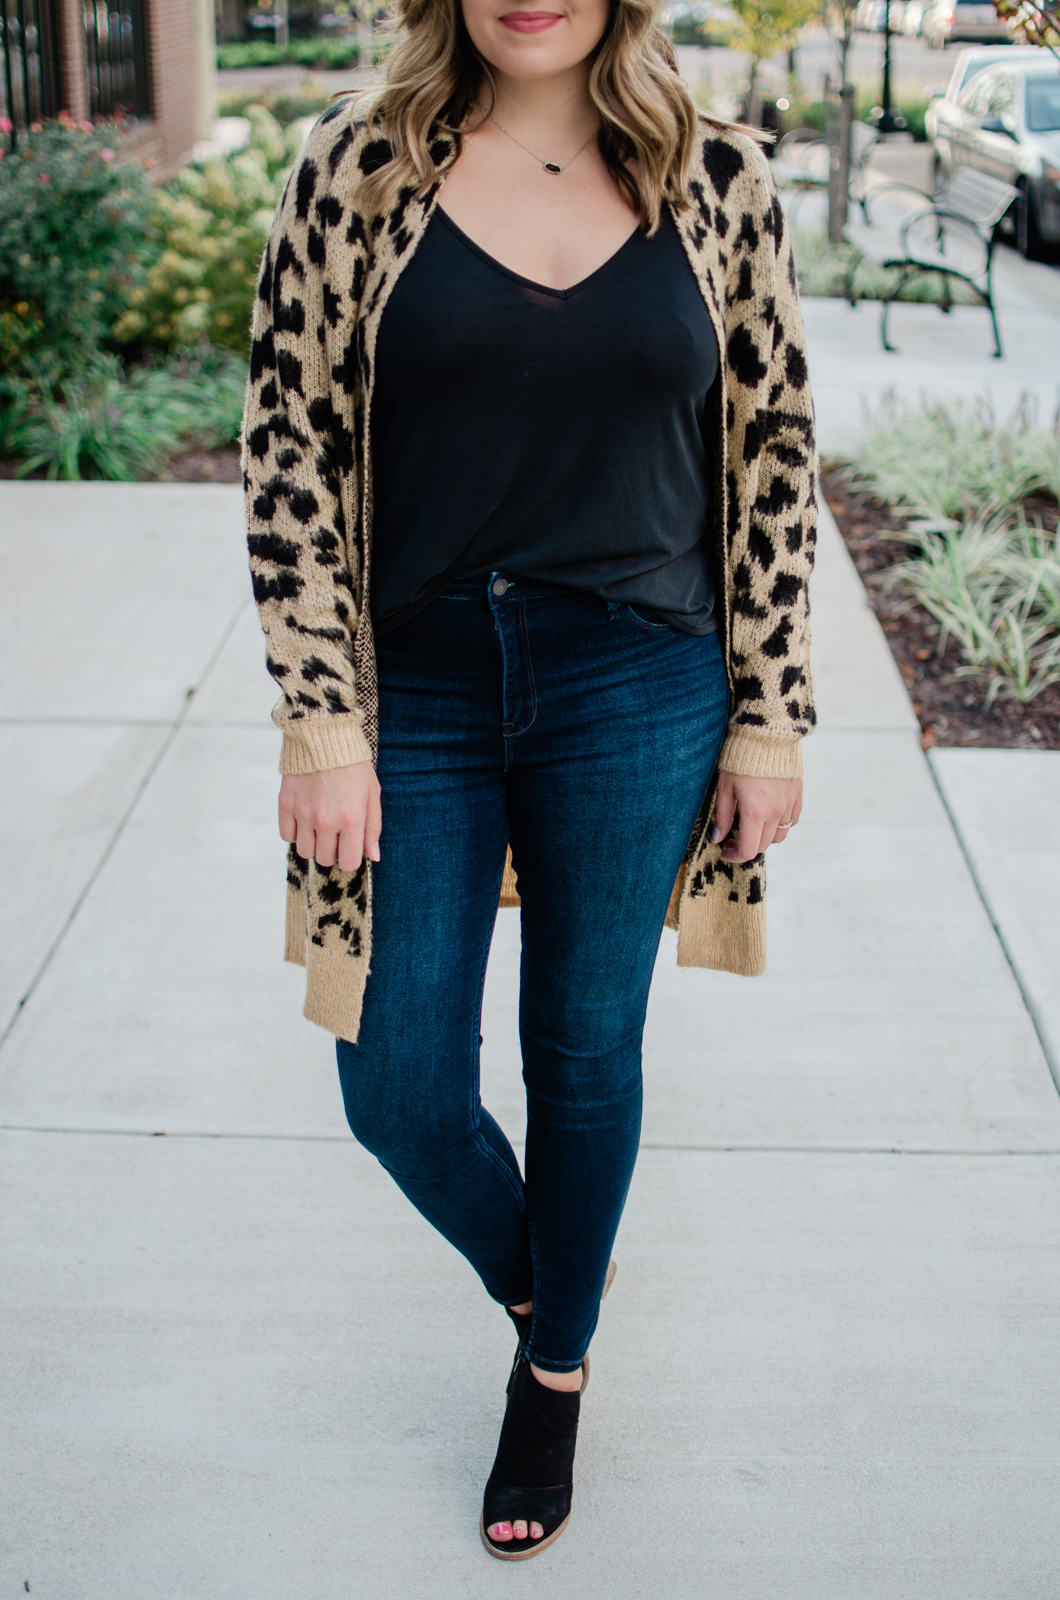 fall casual outfit - long leopard print cardigan outfit | bylaurenm.com